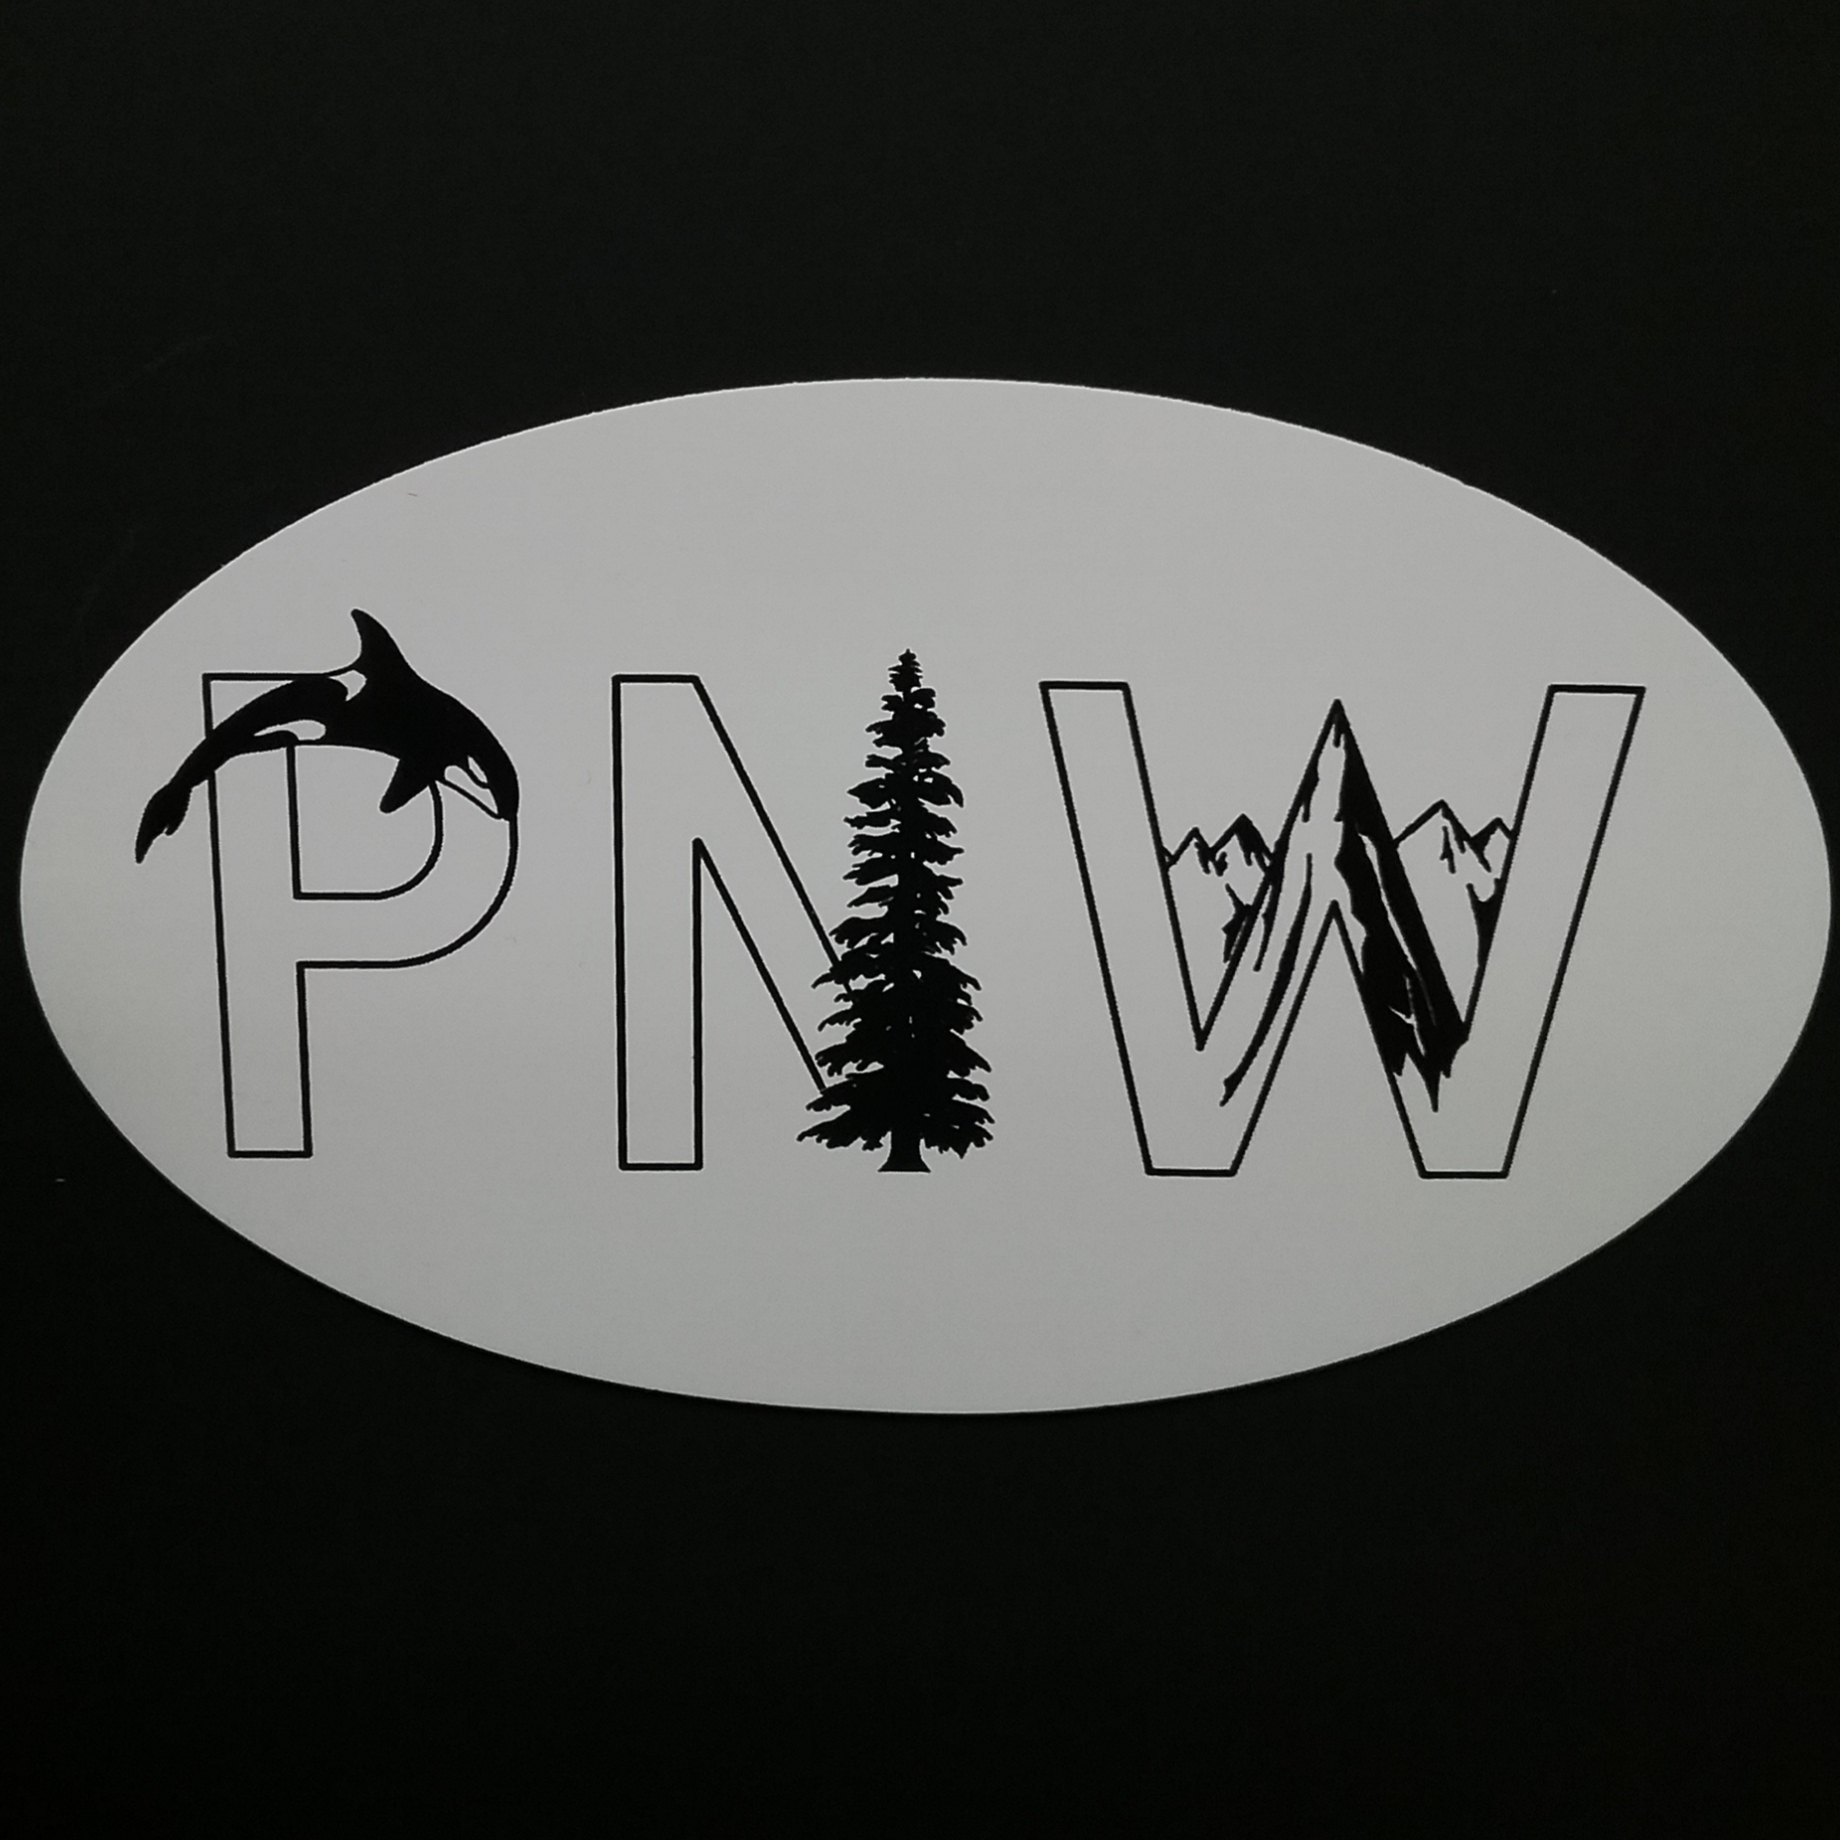 PNW Oval Orca Tree Sticker